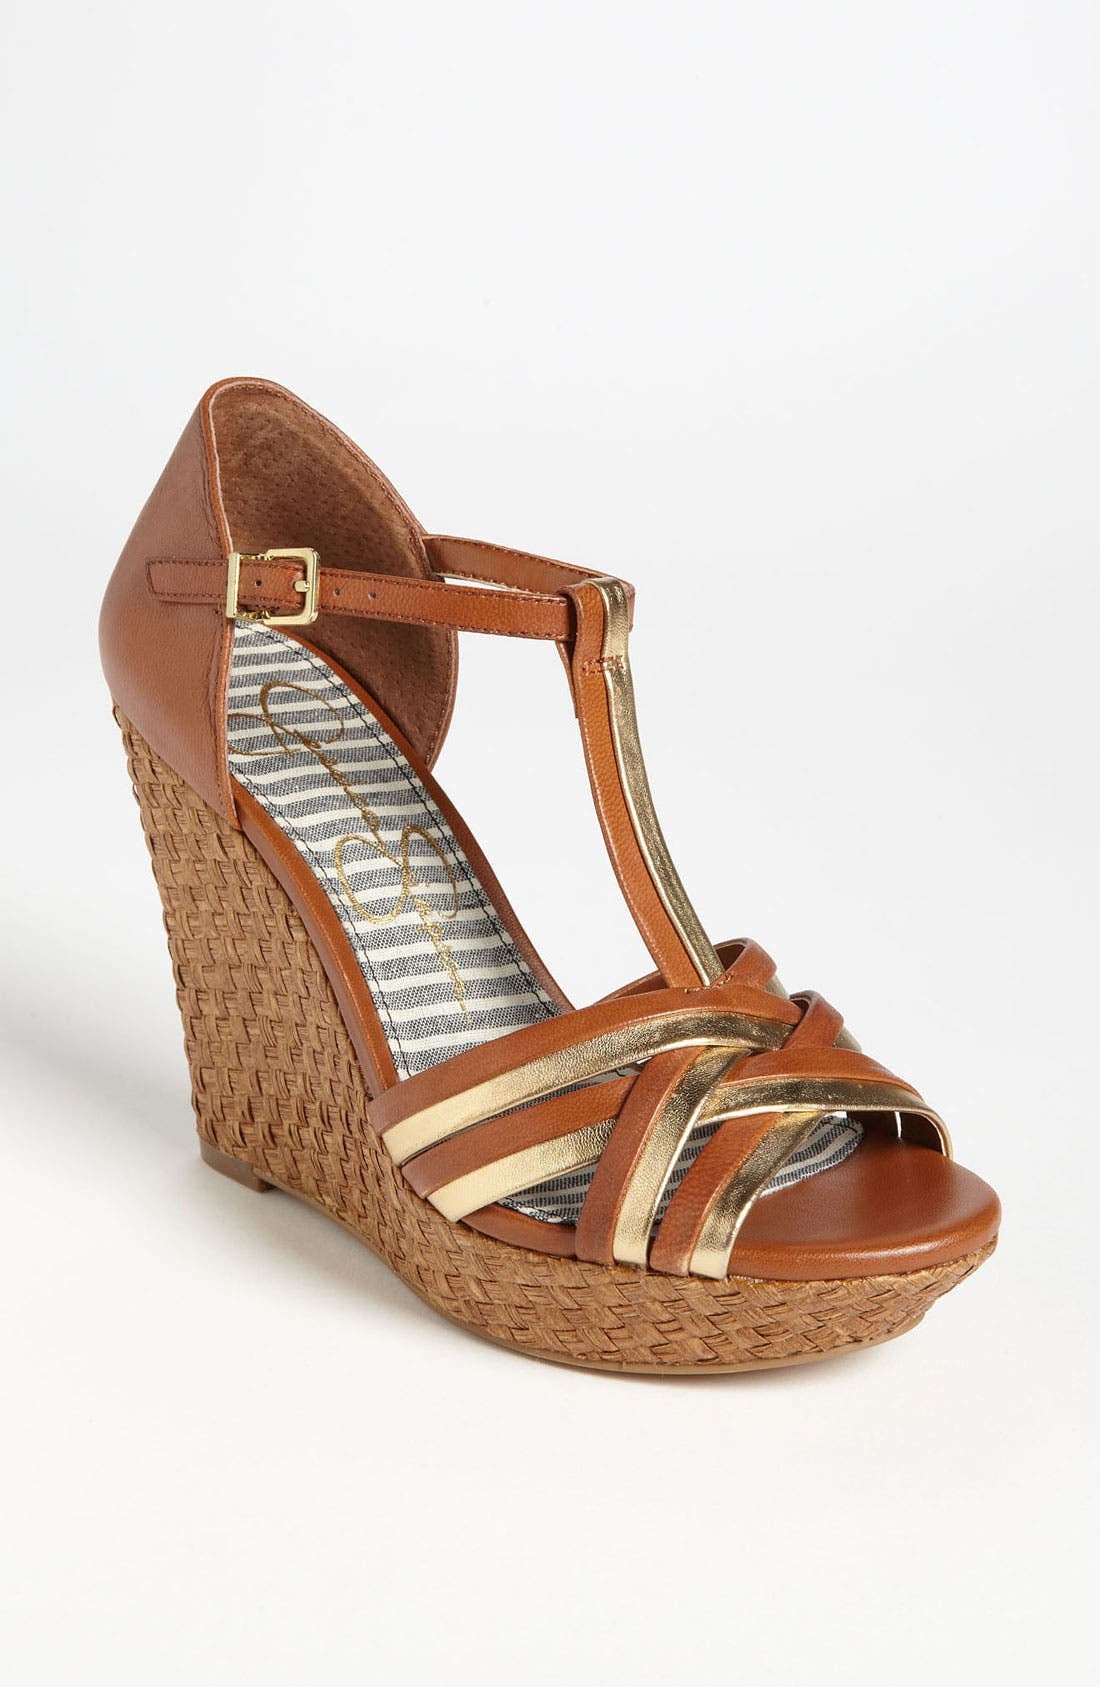 Alternate Image 1 Selected - Jessica Simpson 'Calista' Sandal (Nordstrom Exclusive)